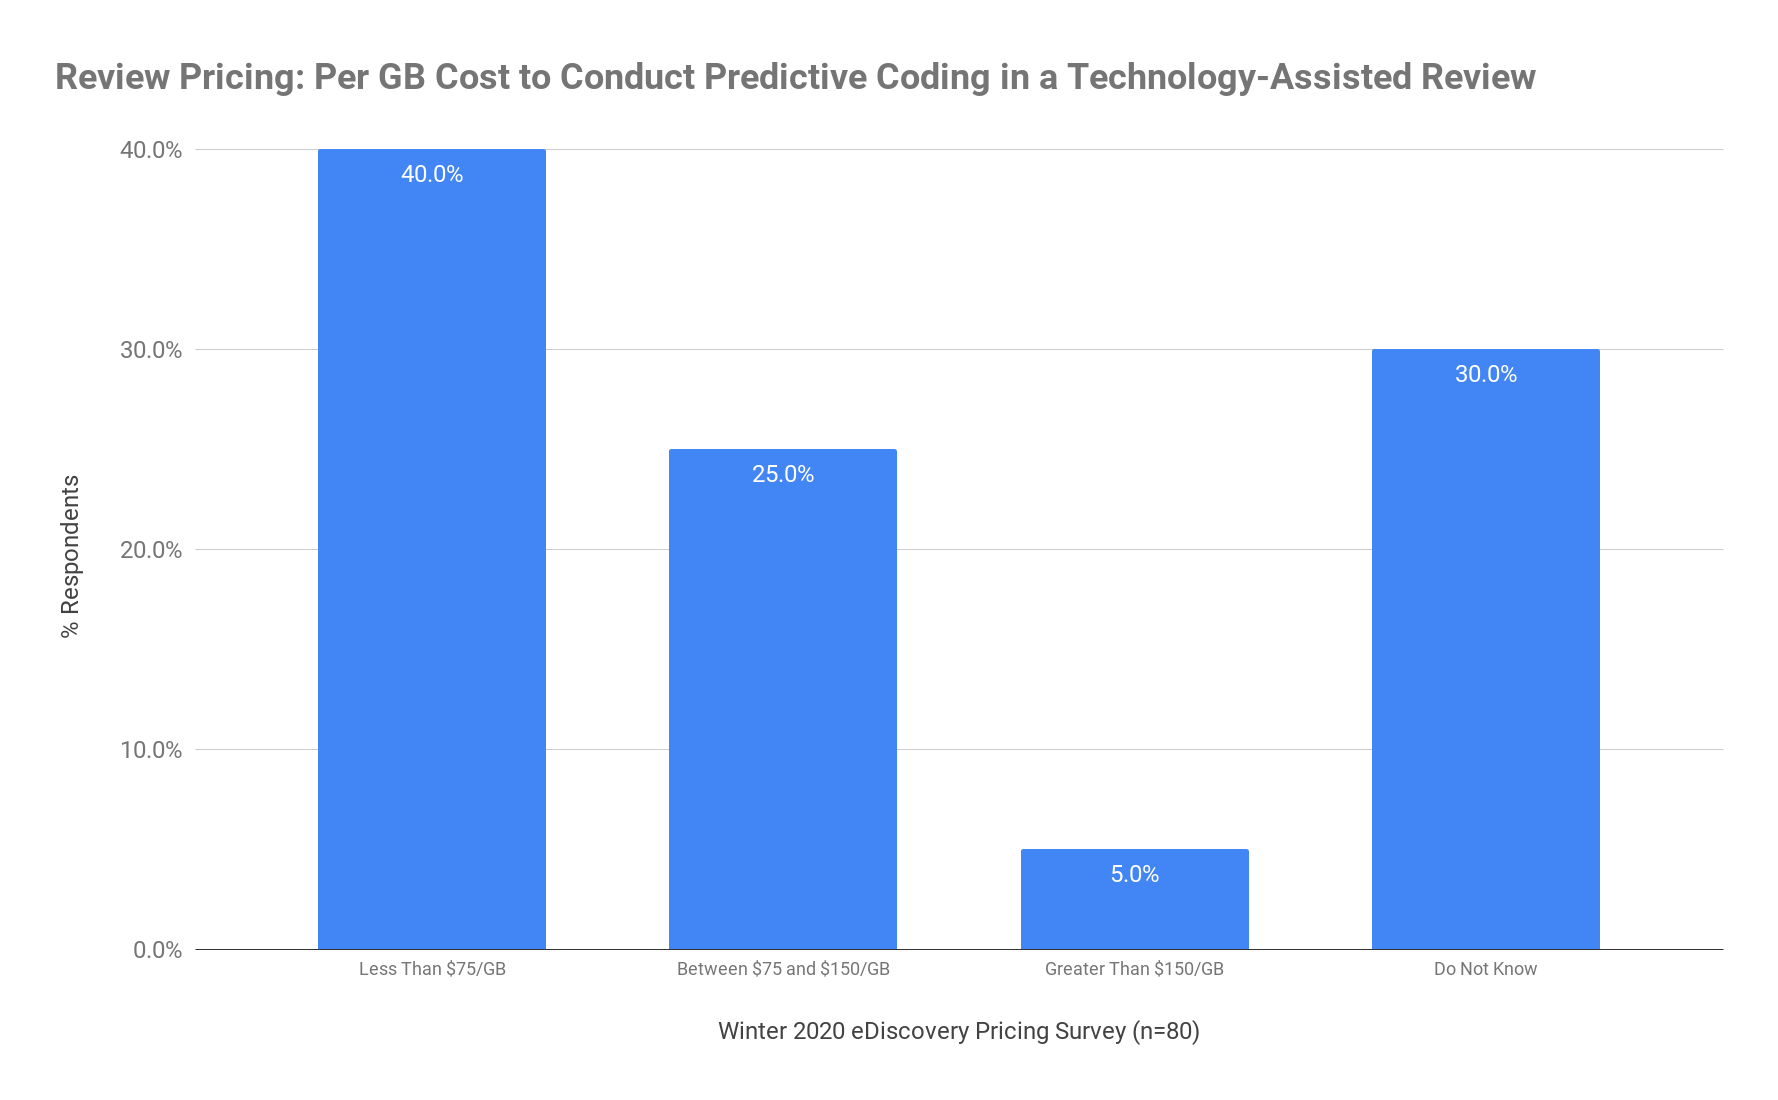 Review Pricing - Per GB Cost to Conduct Predictive Coding in a Technology-Assisted Review - Winter 2020